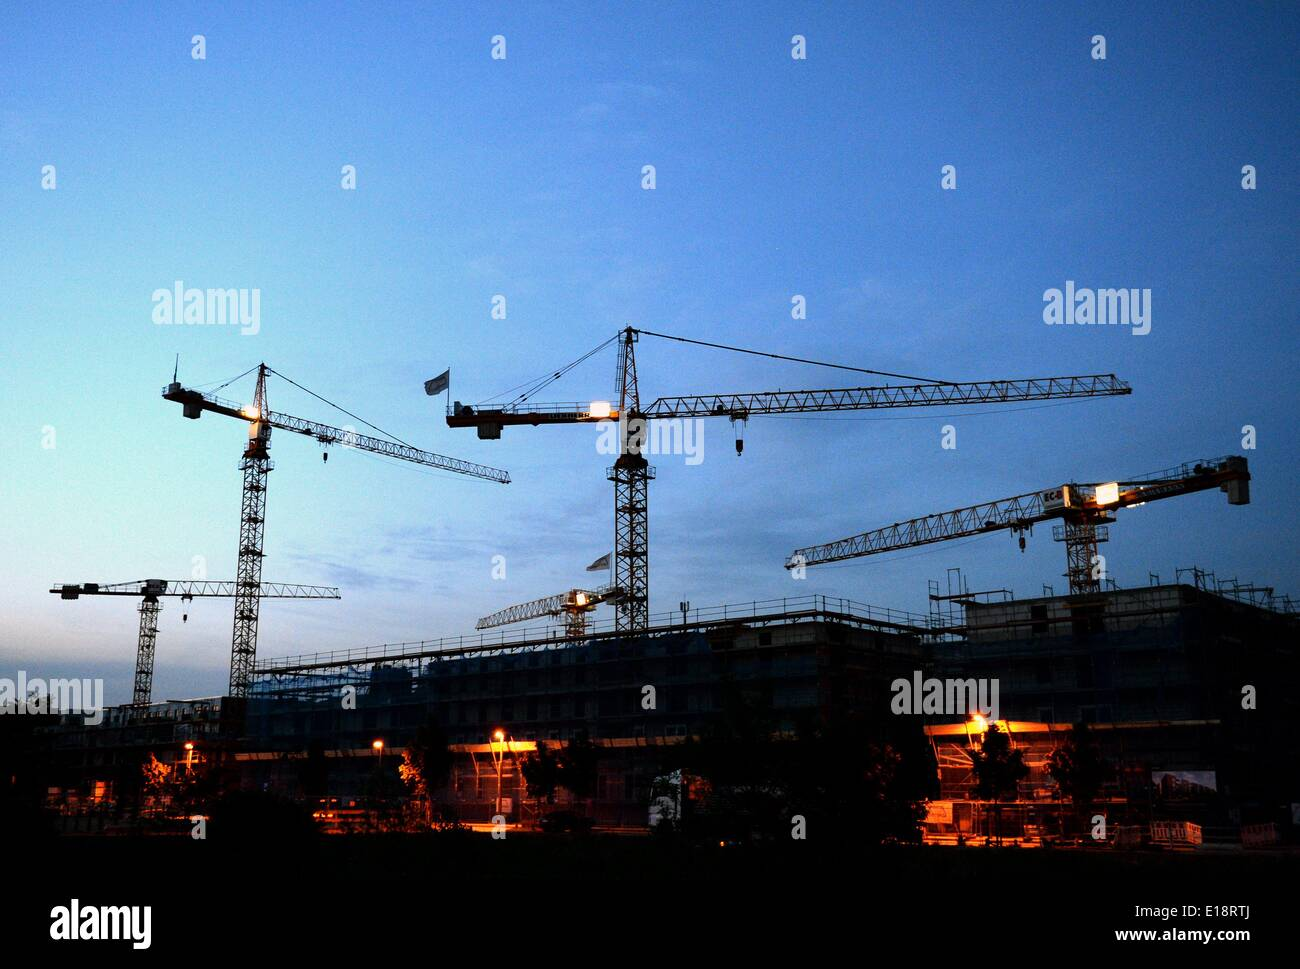 Construction cranes of a building site, captured on 21 May 2014 in Hamburg. Stock Photo